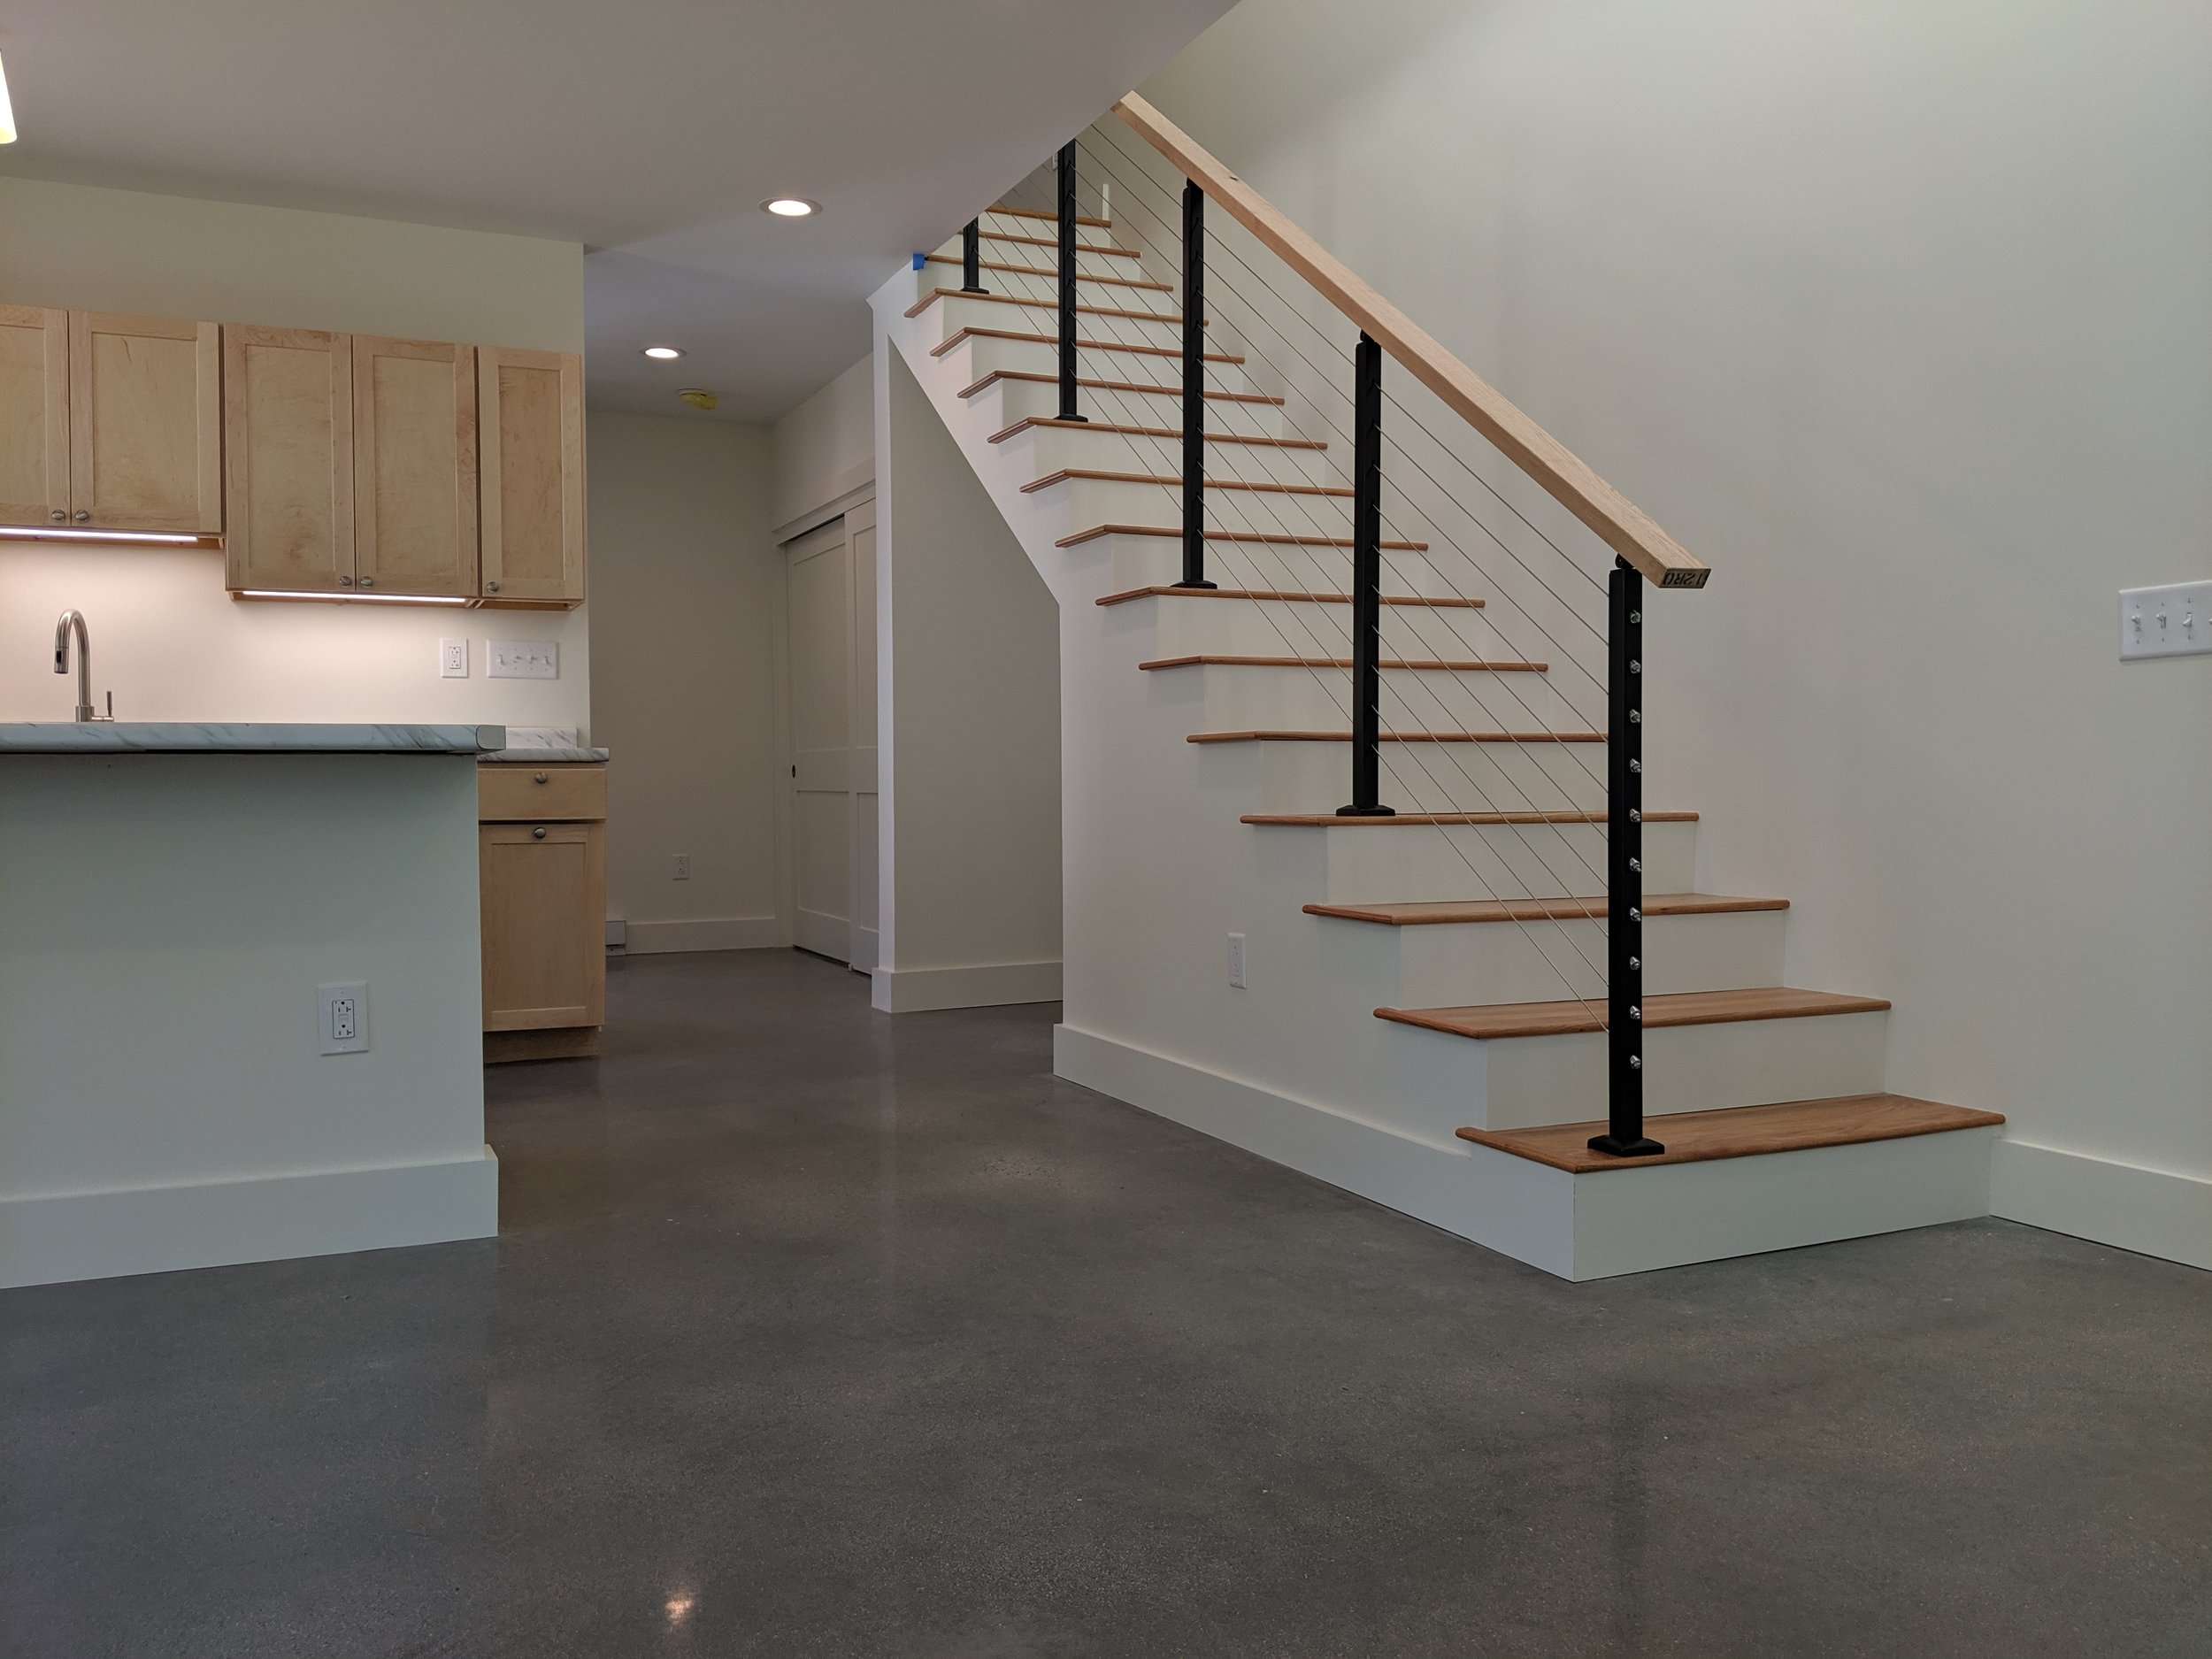 Polished Concrete Floors, Cable Rail, Open Concept Kitchen